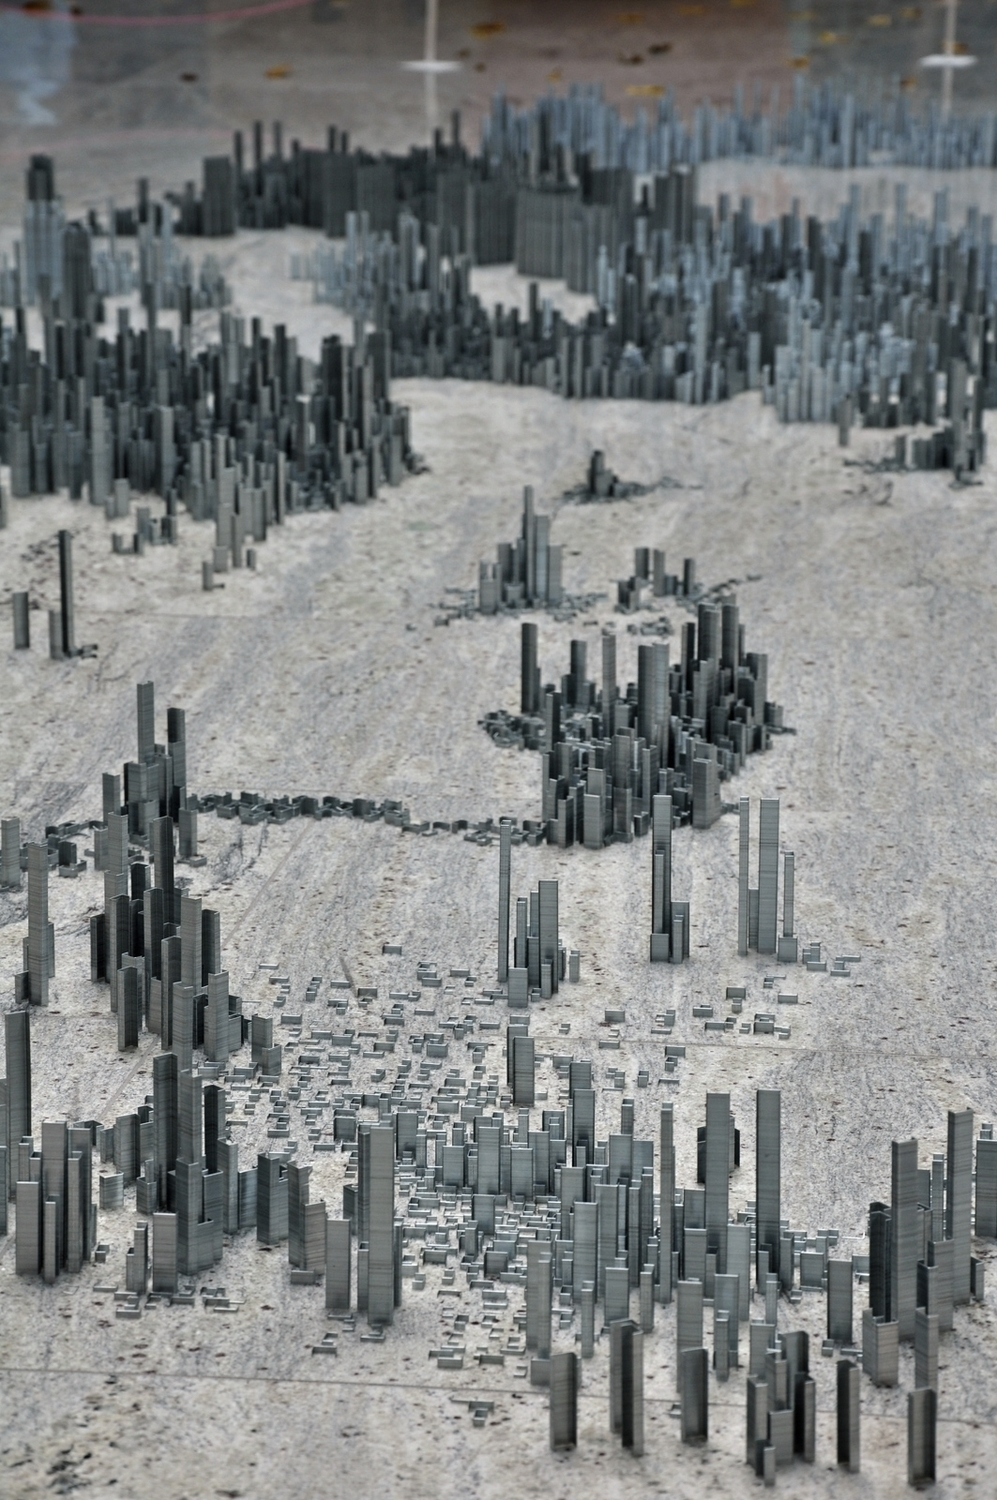 Peter Root – 100,000 staples City installation